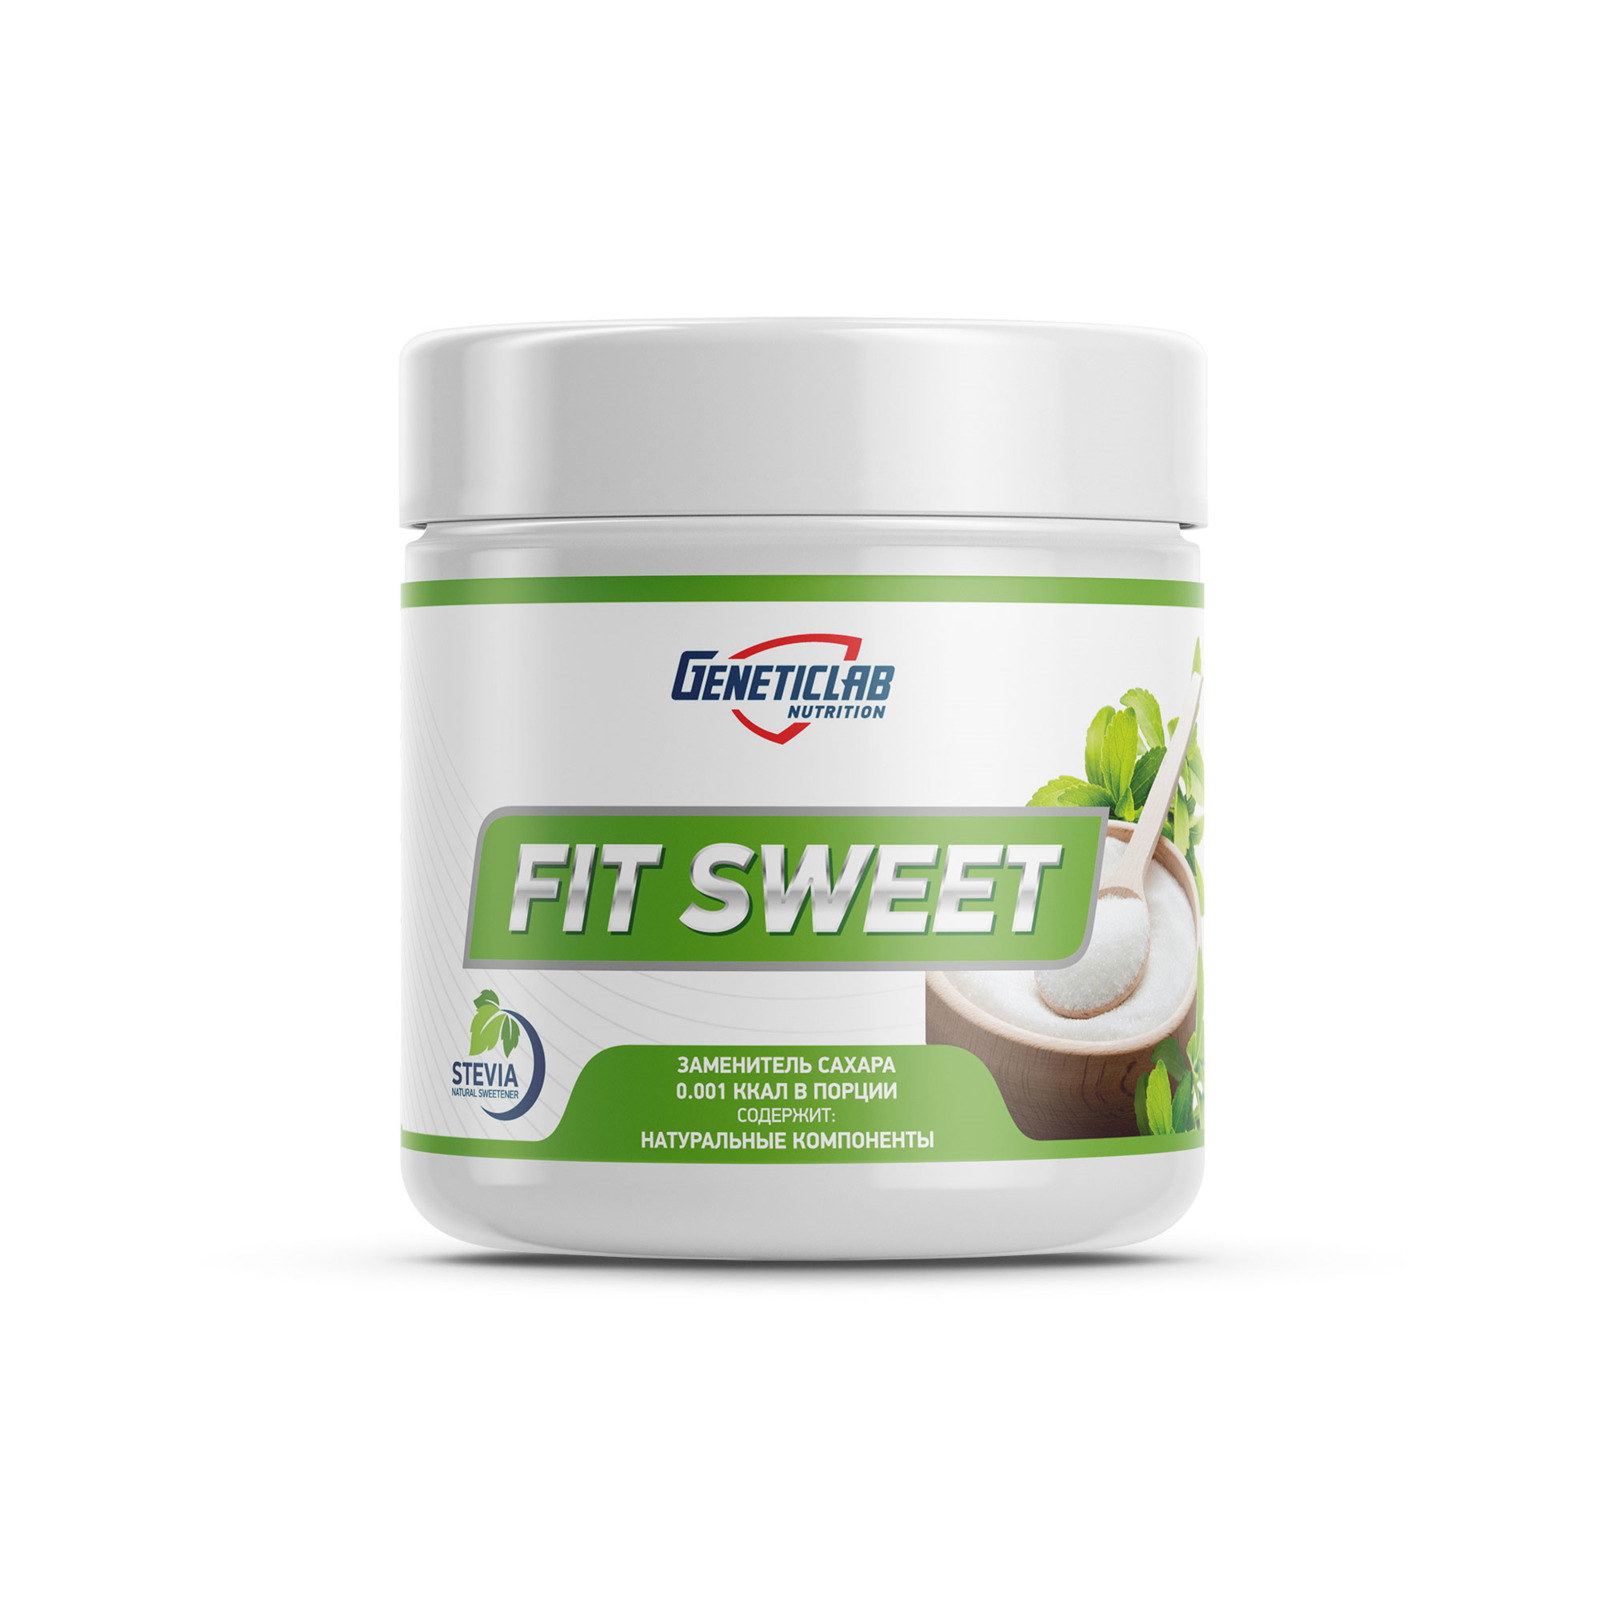 Фитнес питание Geneticlab Nutrition Fit Sweet, 200 г